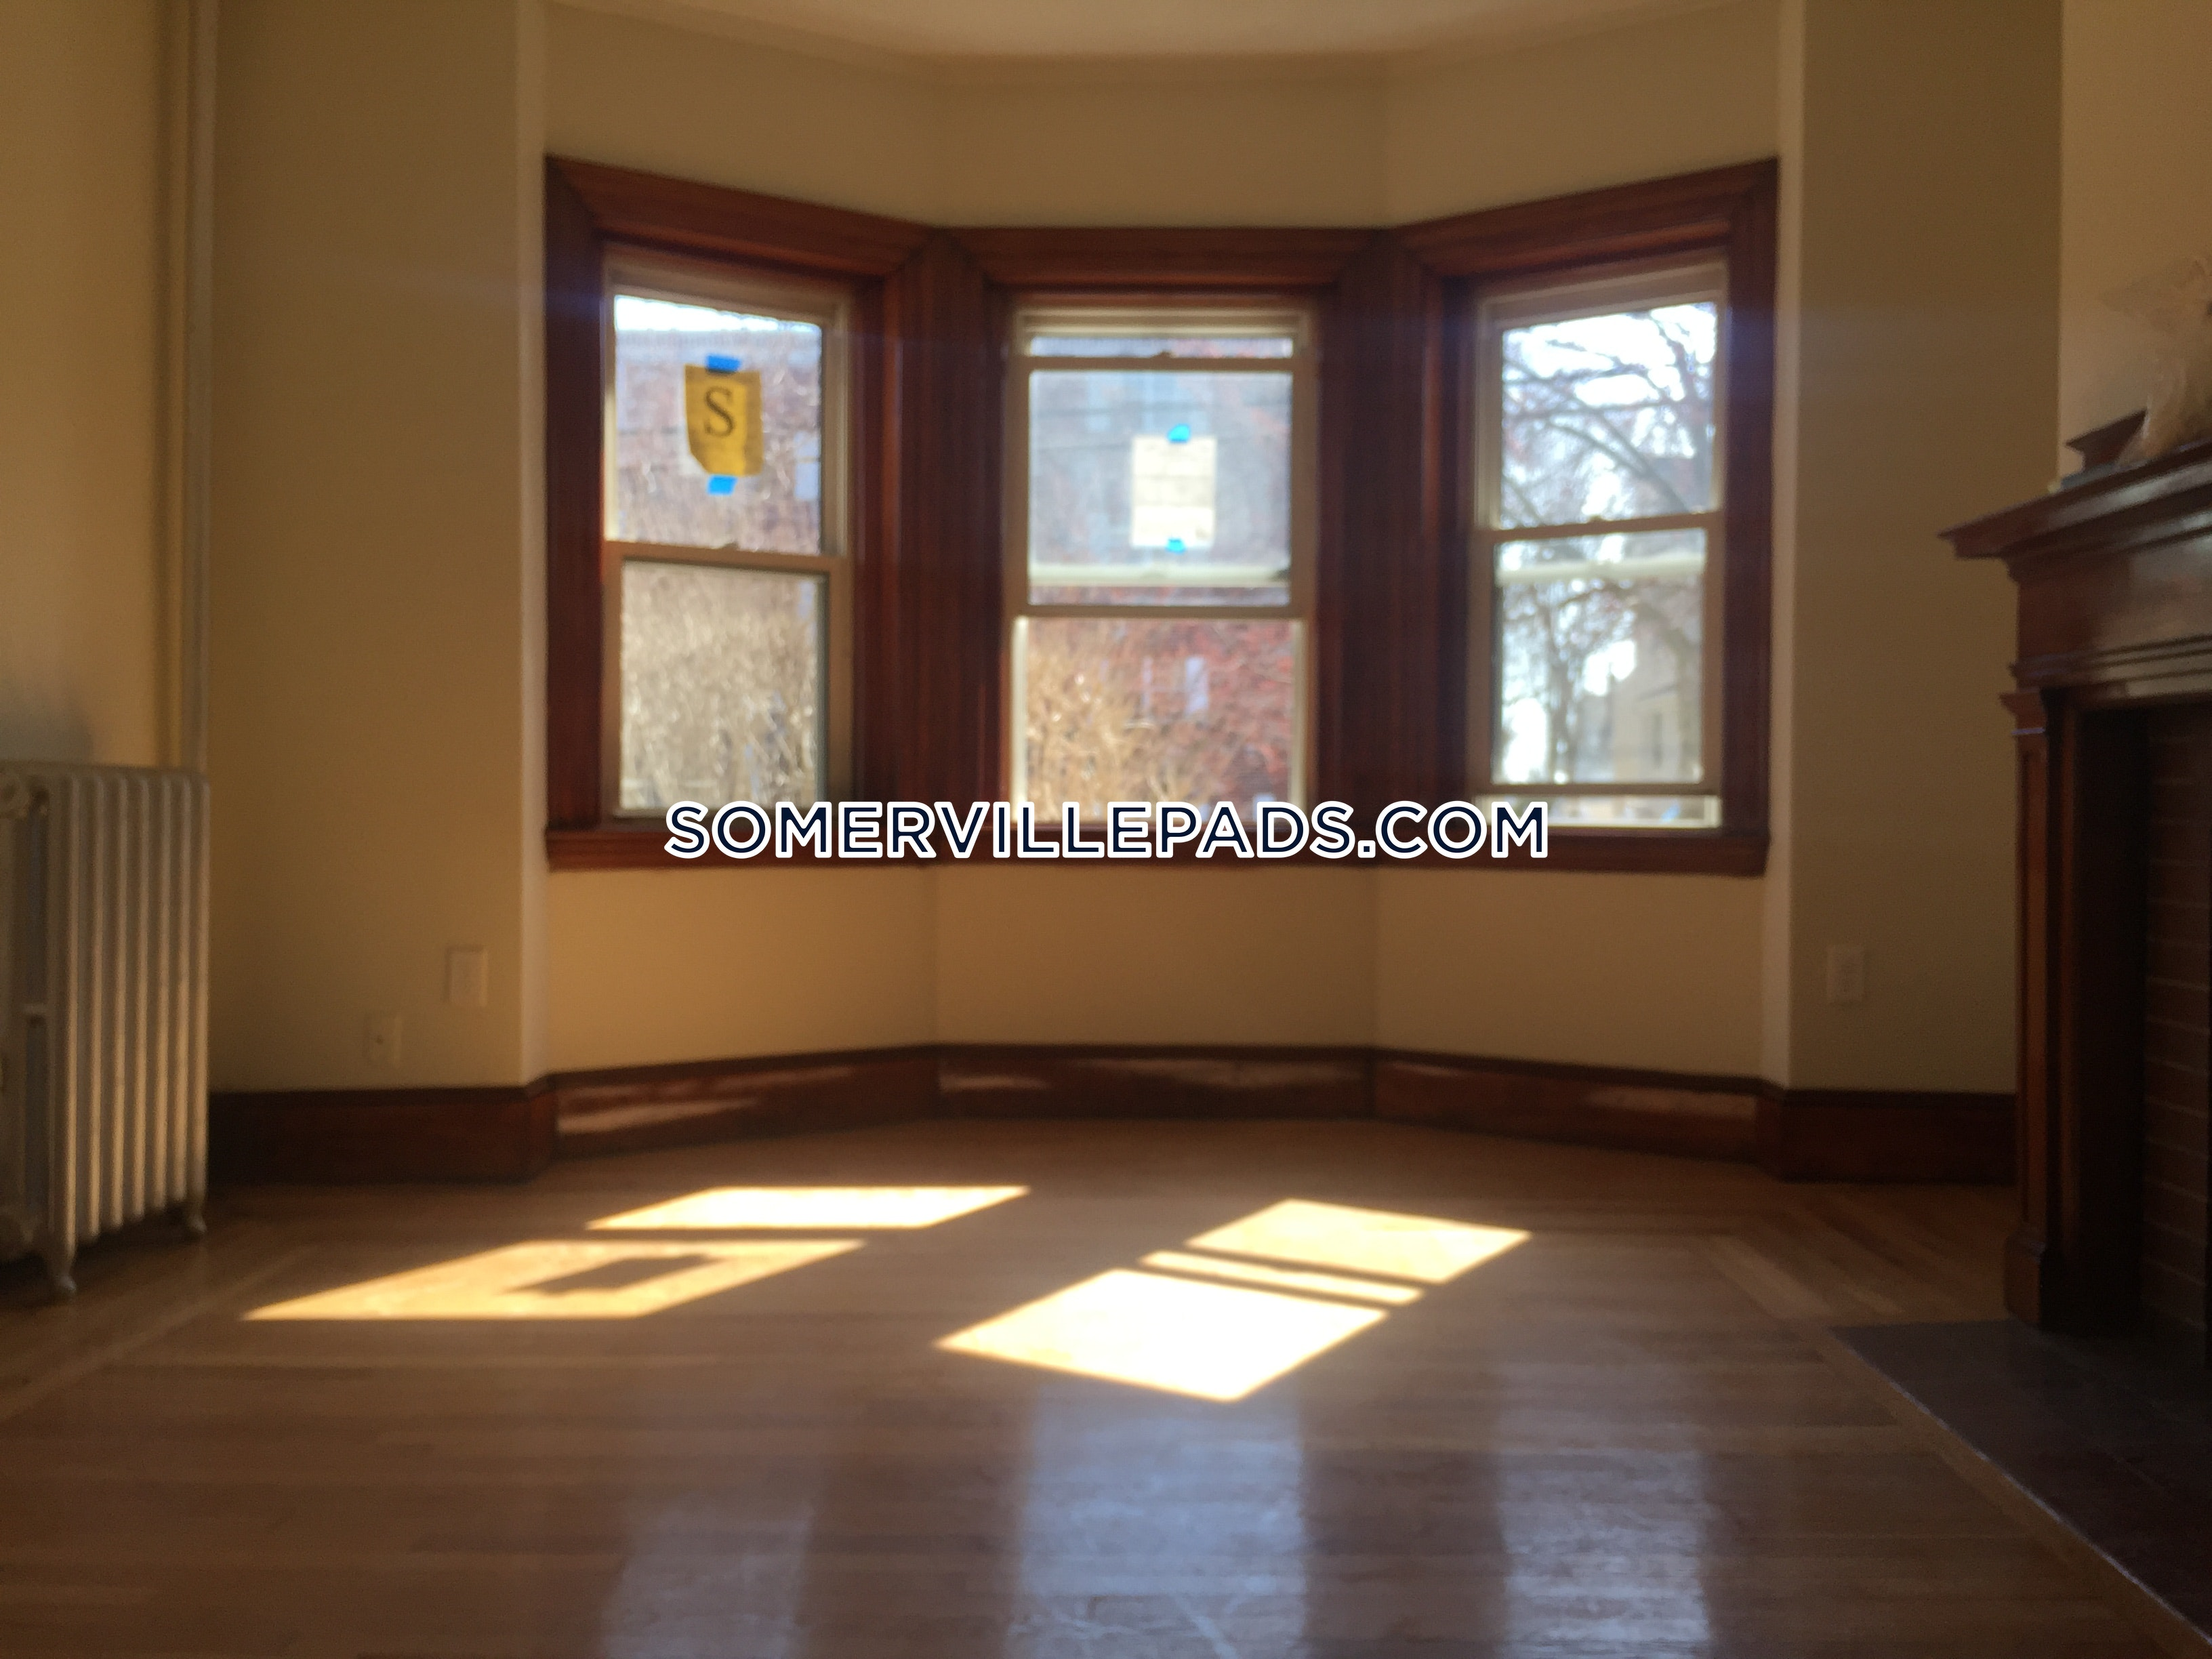 4-beds-1-bath-somerville-spring-hill-3200-somerville-spring-hill-3200-somerville-spring-hill-3200-373294